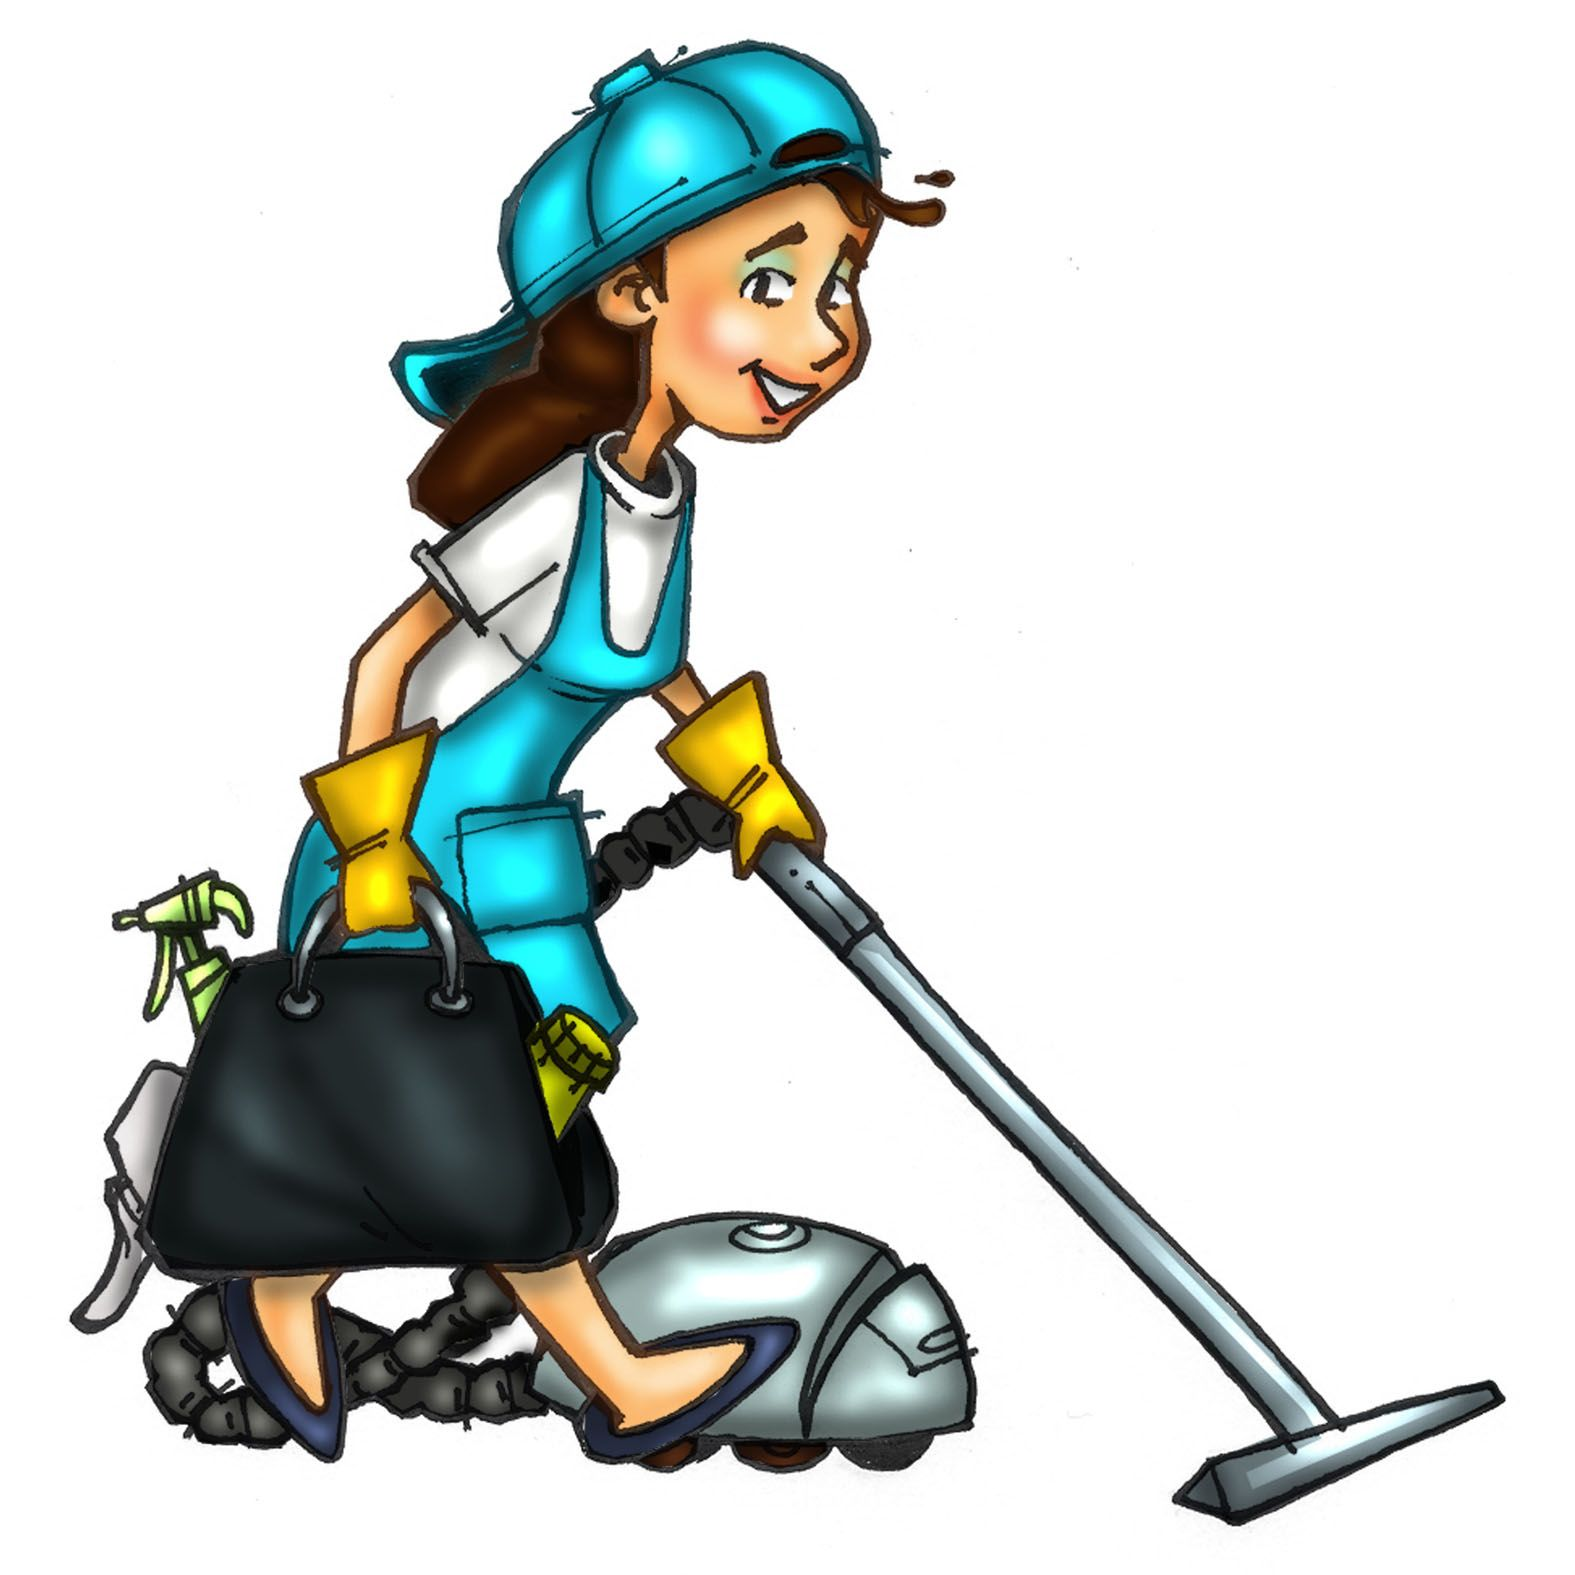 Pictures of maids cliparts. Maid clipart office cleaning services